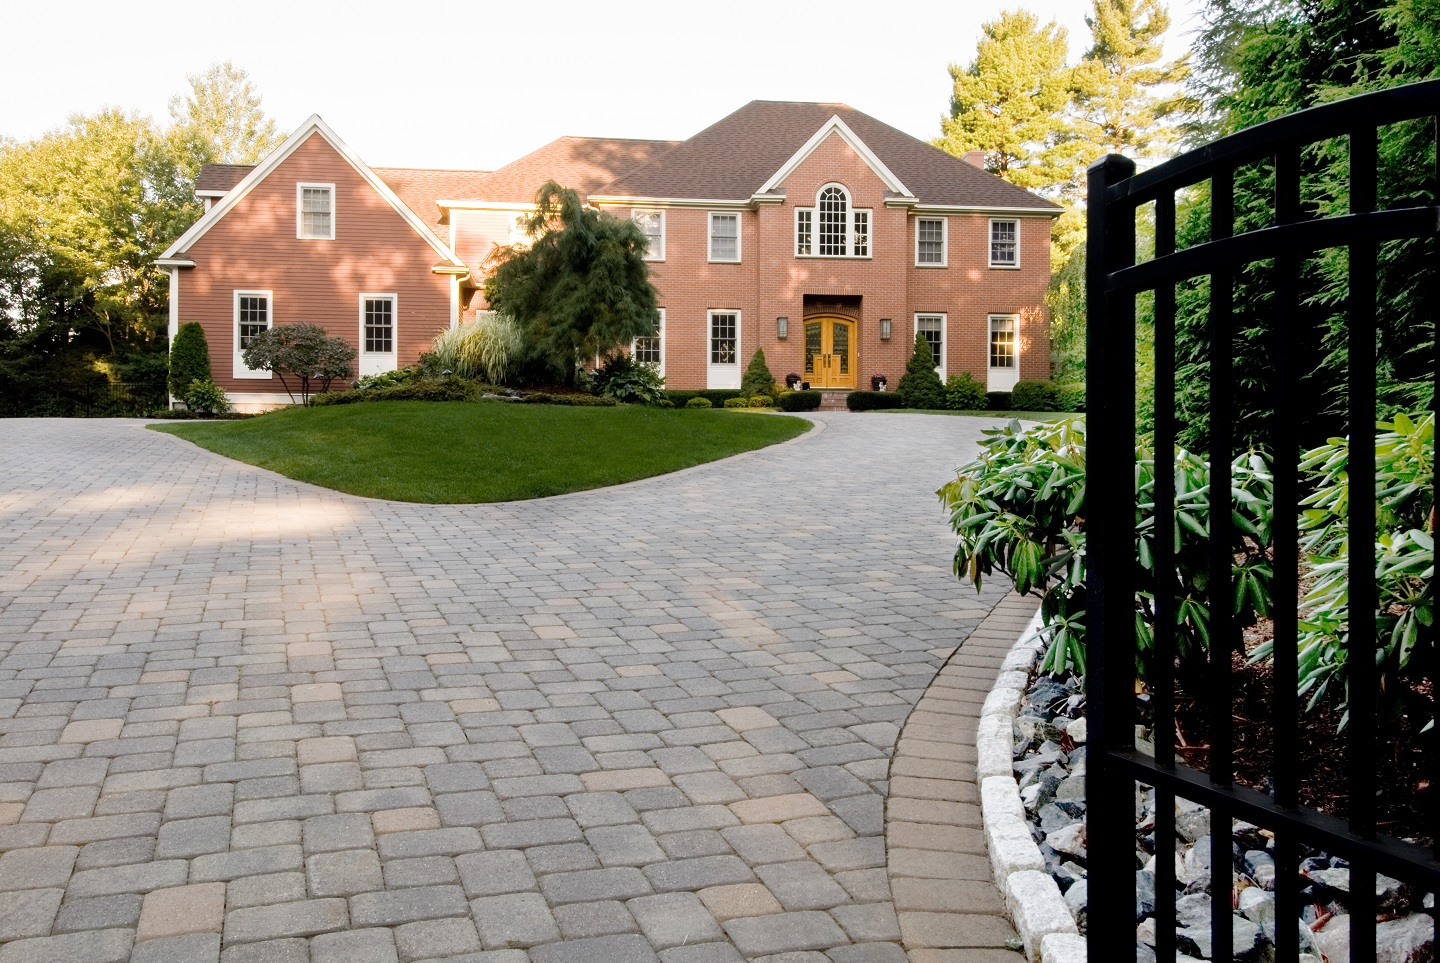 High-quality driveway pavers in Brookline MA